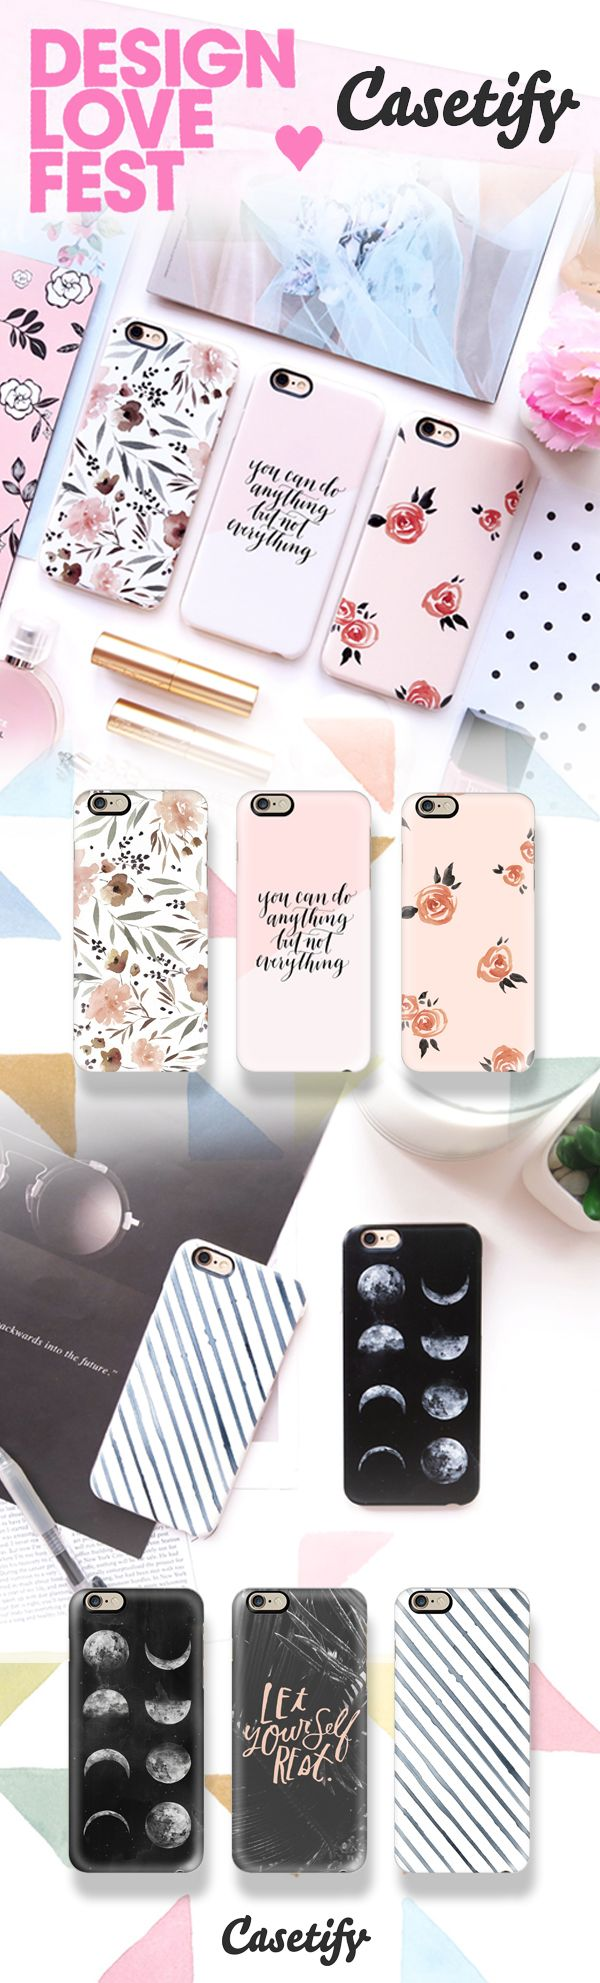 As a company, one of our main objectives has always stayed the same: to support our growing creative community by producing great products.    This opportunity allows us to cross paths with like-minded brands which is why we are excited to announce our exclusive collaboration with @designlovefest and their #DressYourTech artists.  Available for the NEW iPhone 6S/6S+. #DLFCasetify